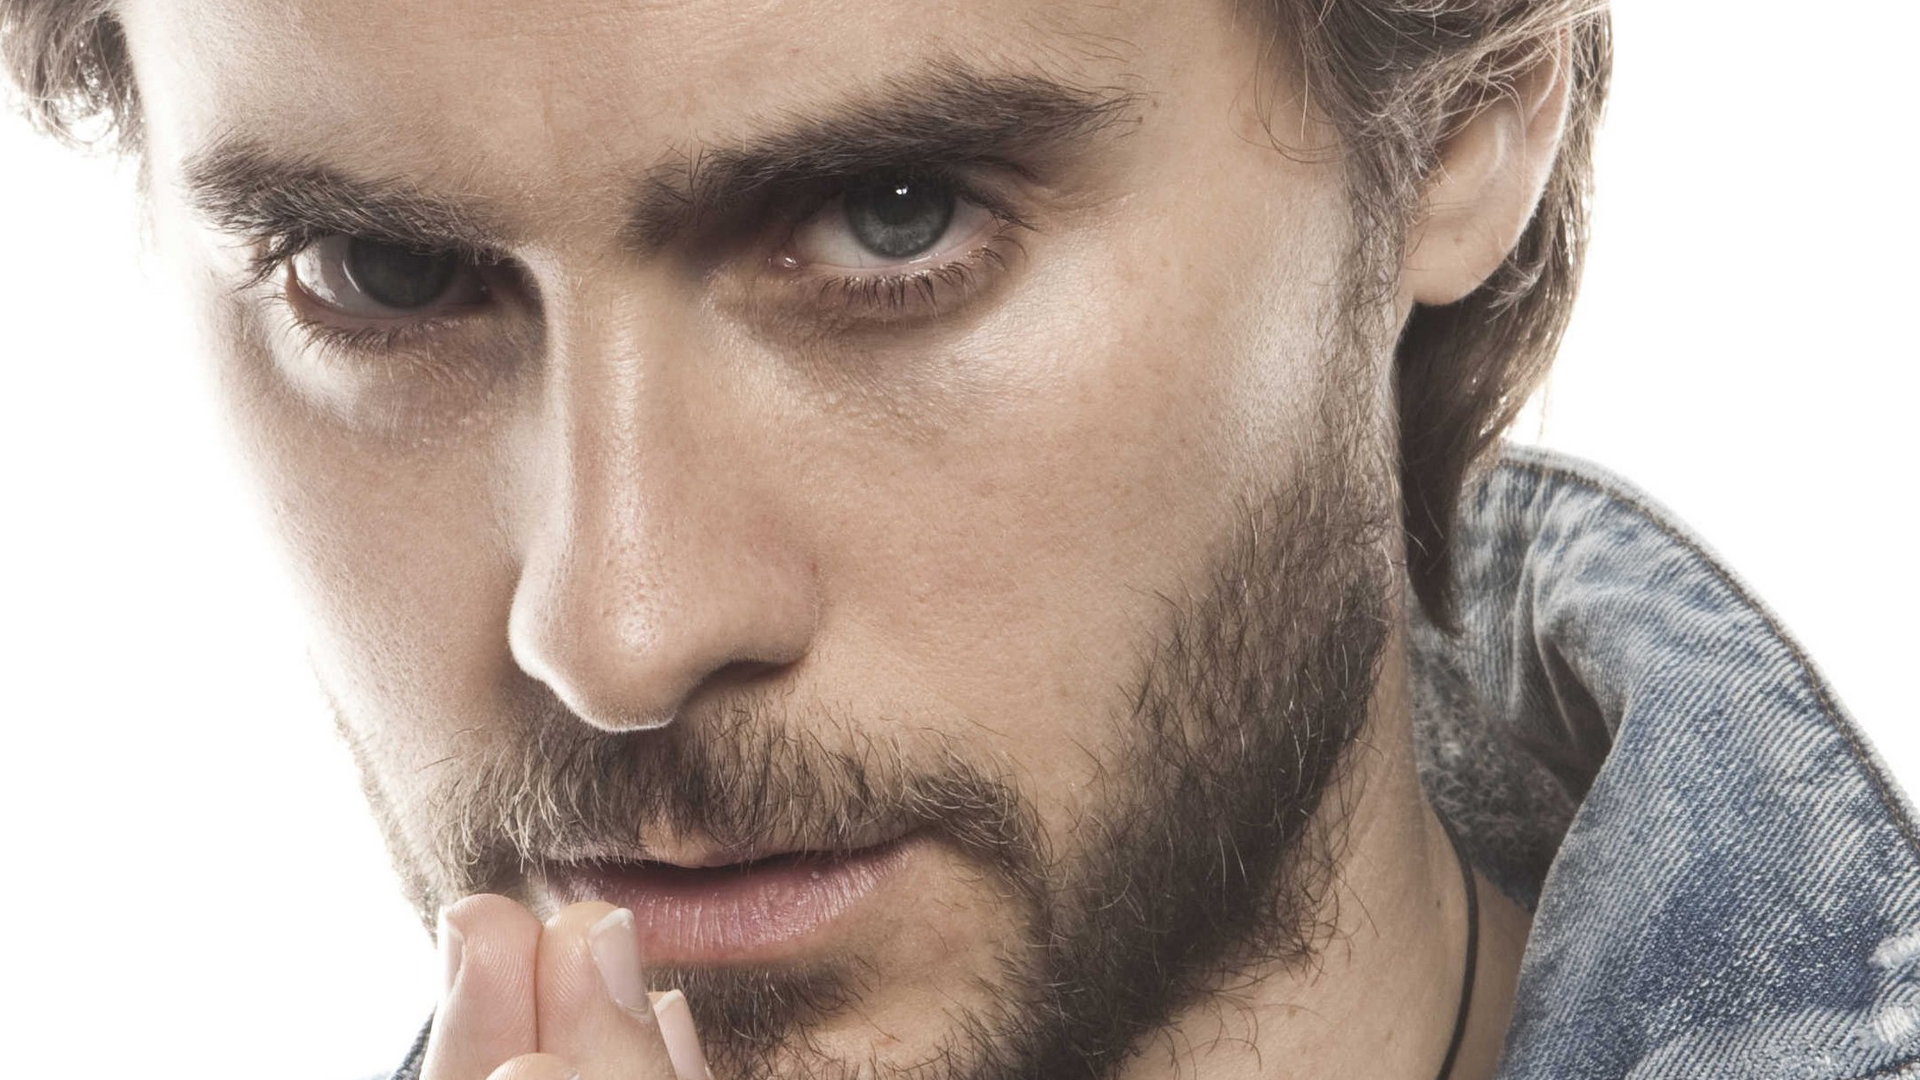 Jared leto images jared leto hd wallpaper and background photos - Jared Leto High Quality Wallpapers